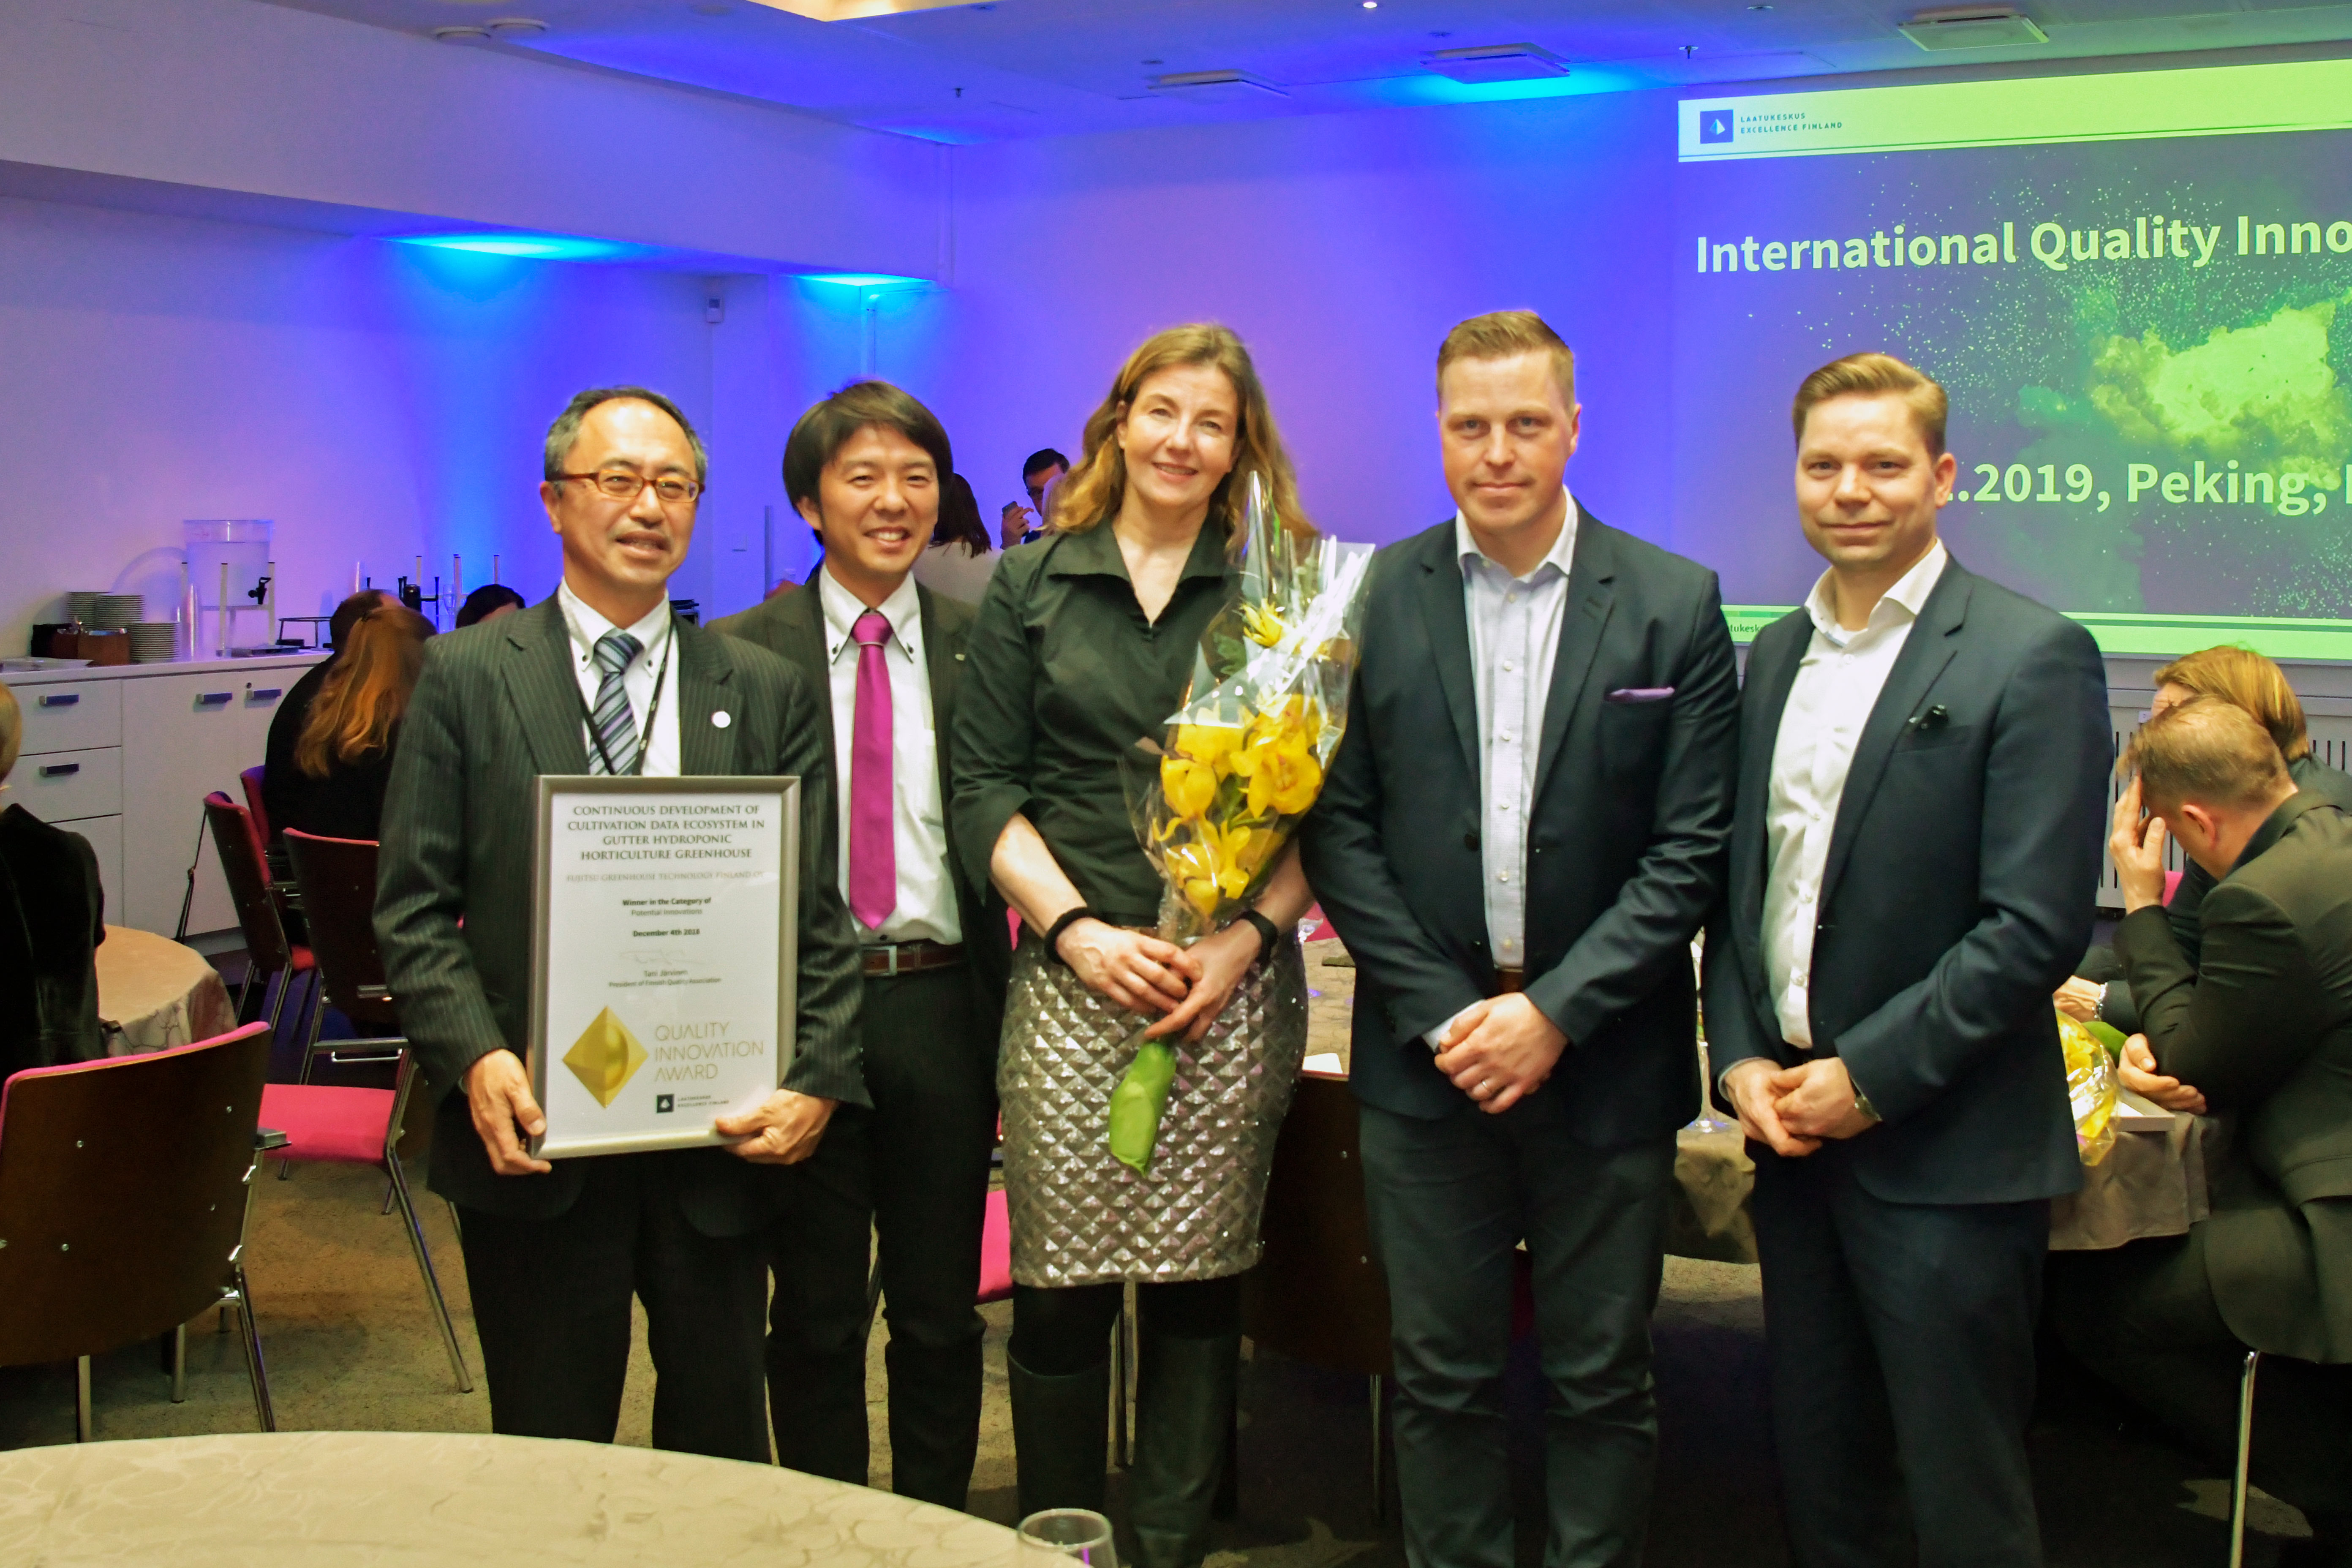 Main visual : Fujitsu Greenhouse Technology named one of the most innovative organizations in Finland